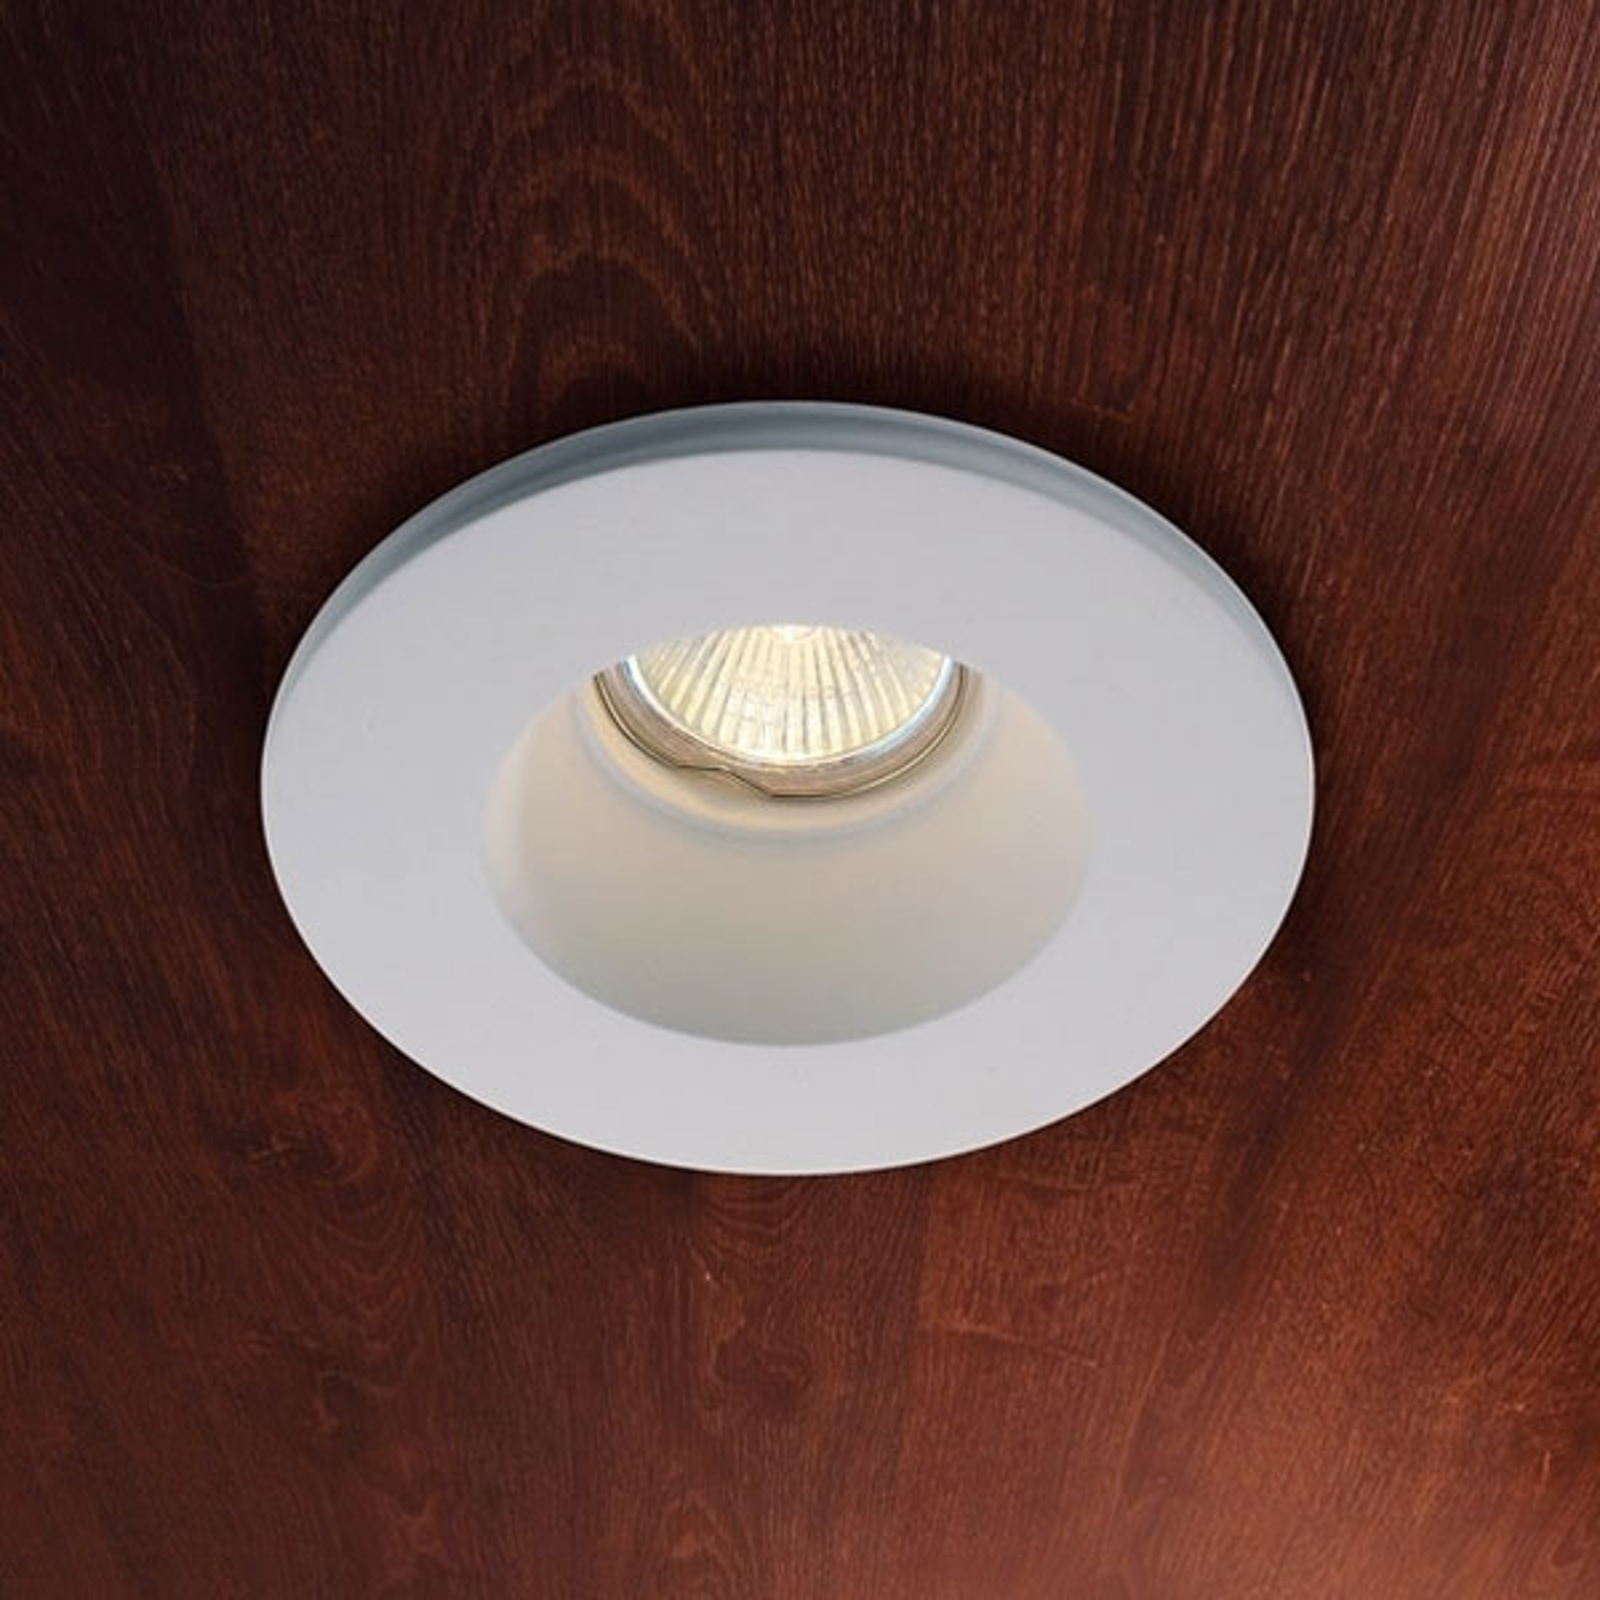 RINA low-voltage plaster recessed light_2501929_1